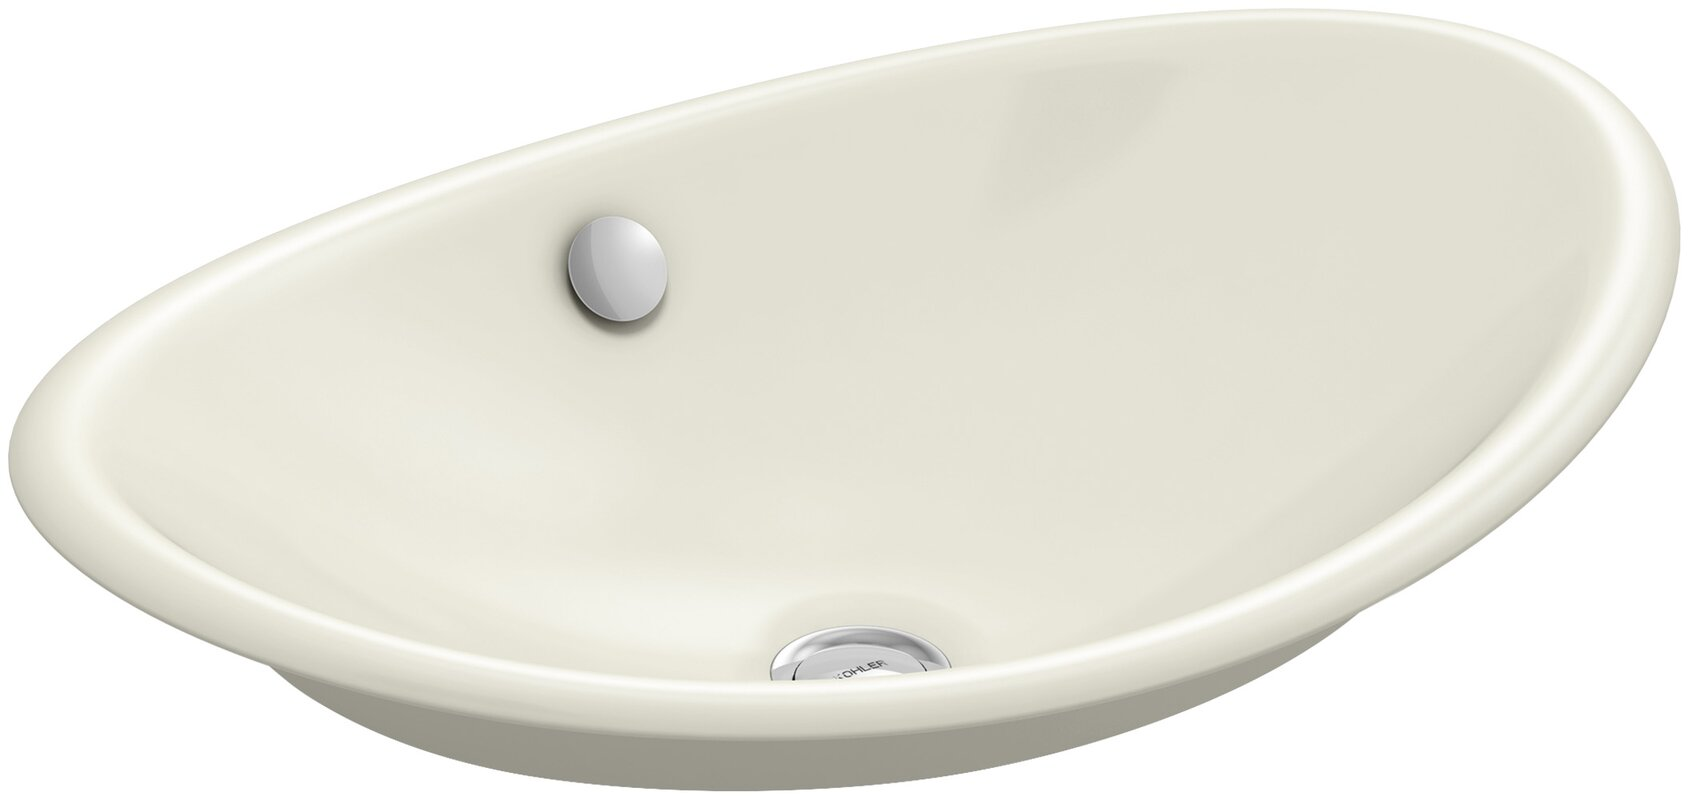 iron plains™ metal oval vessel bathroom sink with overflow. kohler iron plains™ metal oval vessel bathroom sink with overflow